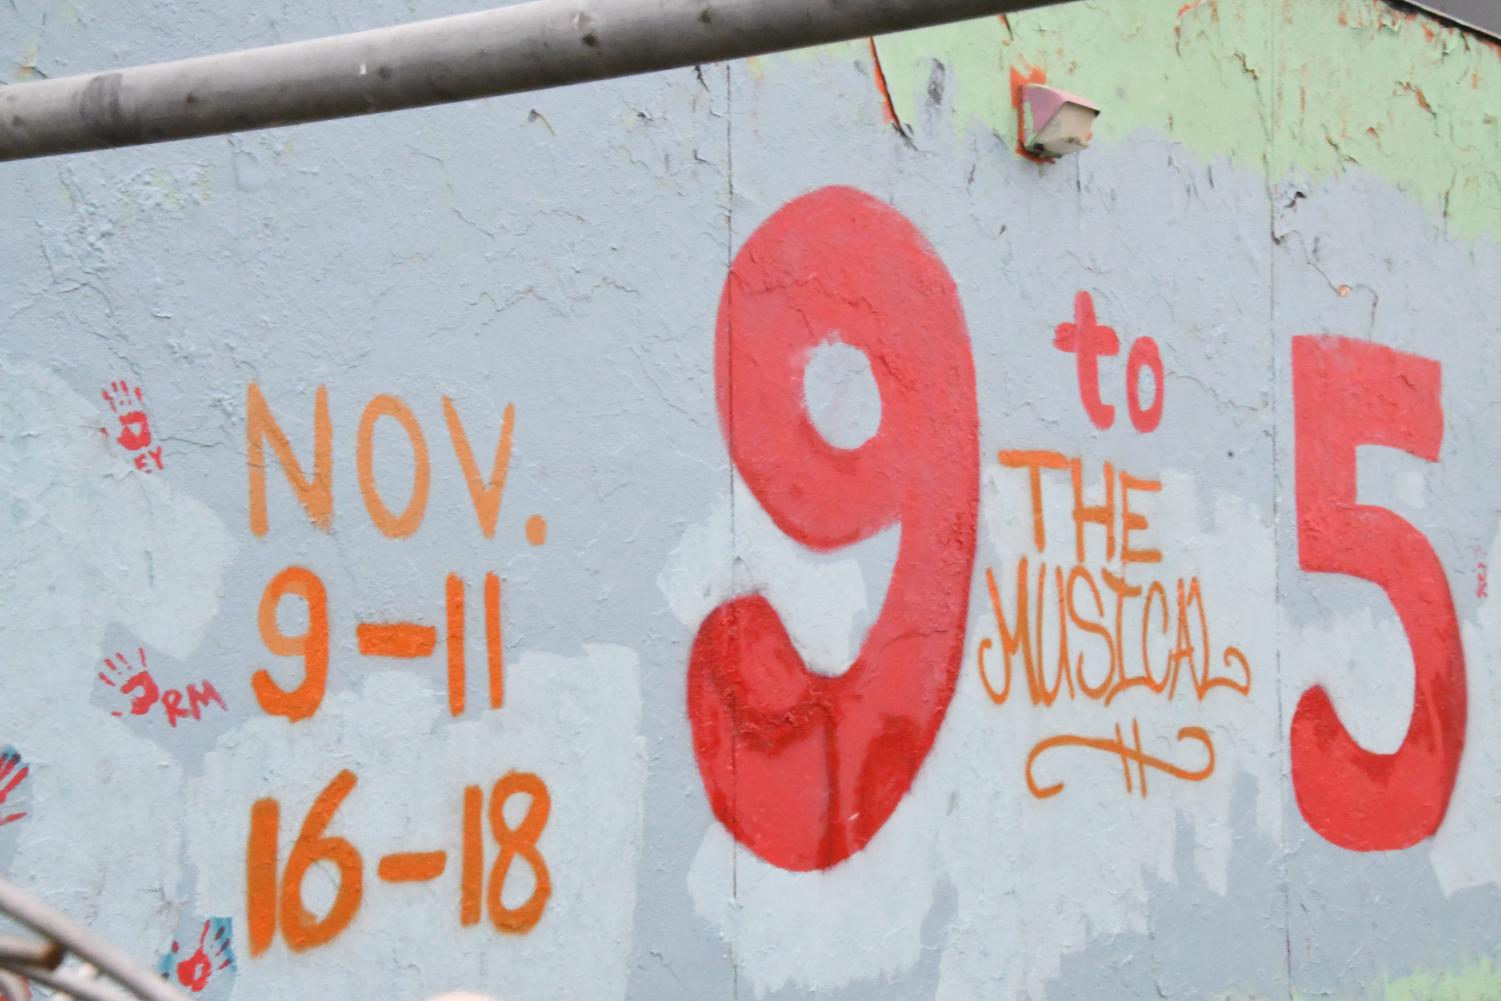 Thespians painted the senior wall Nov. 3 to advertise the fall musical